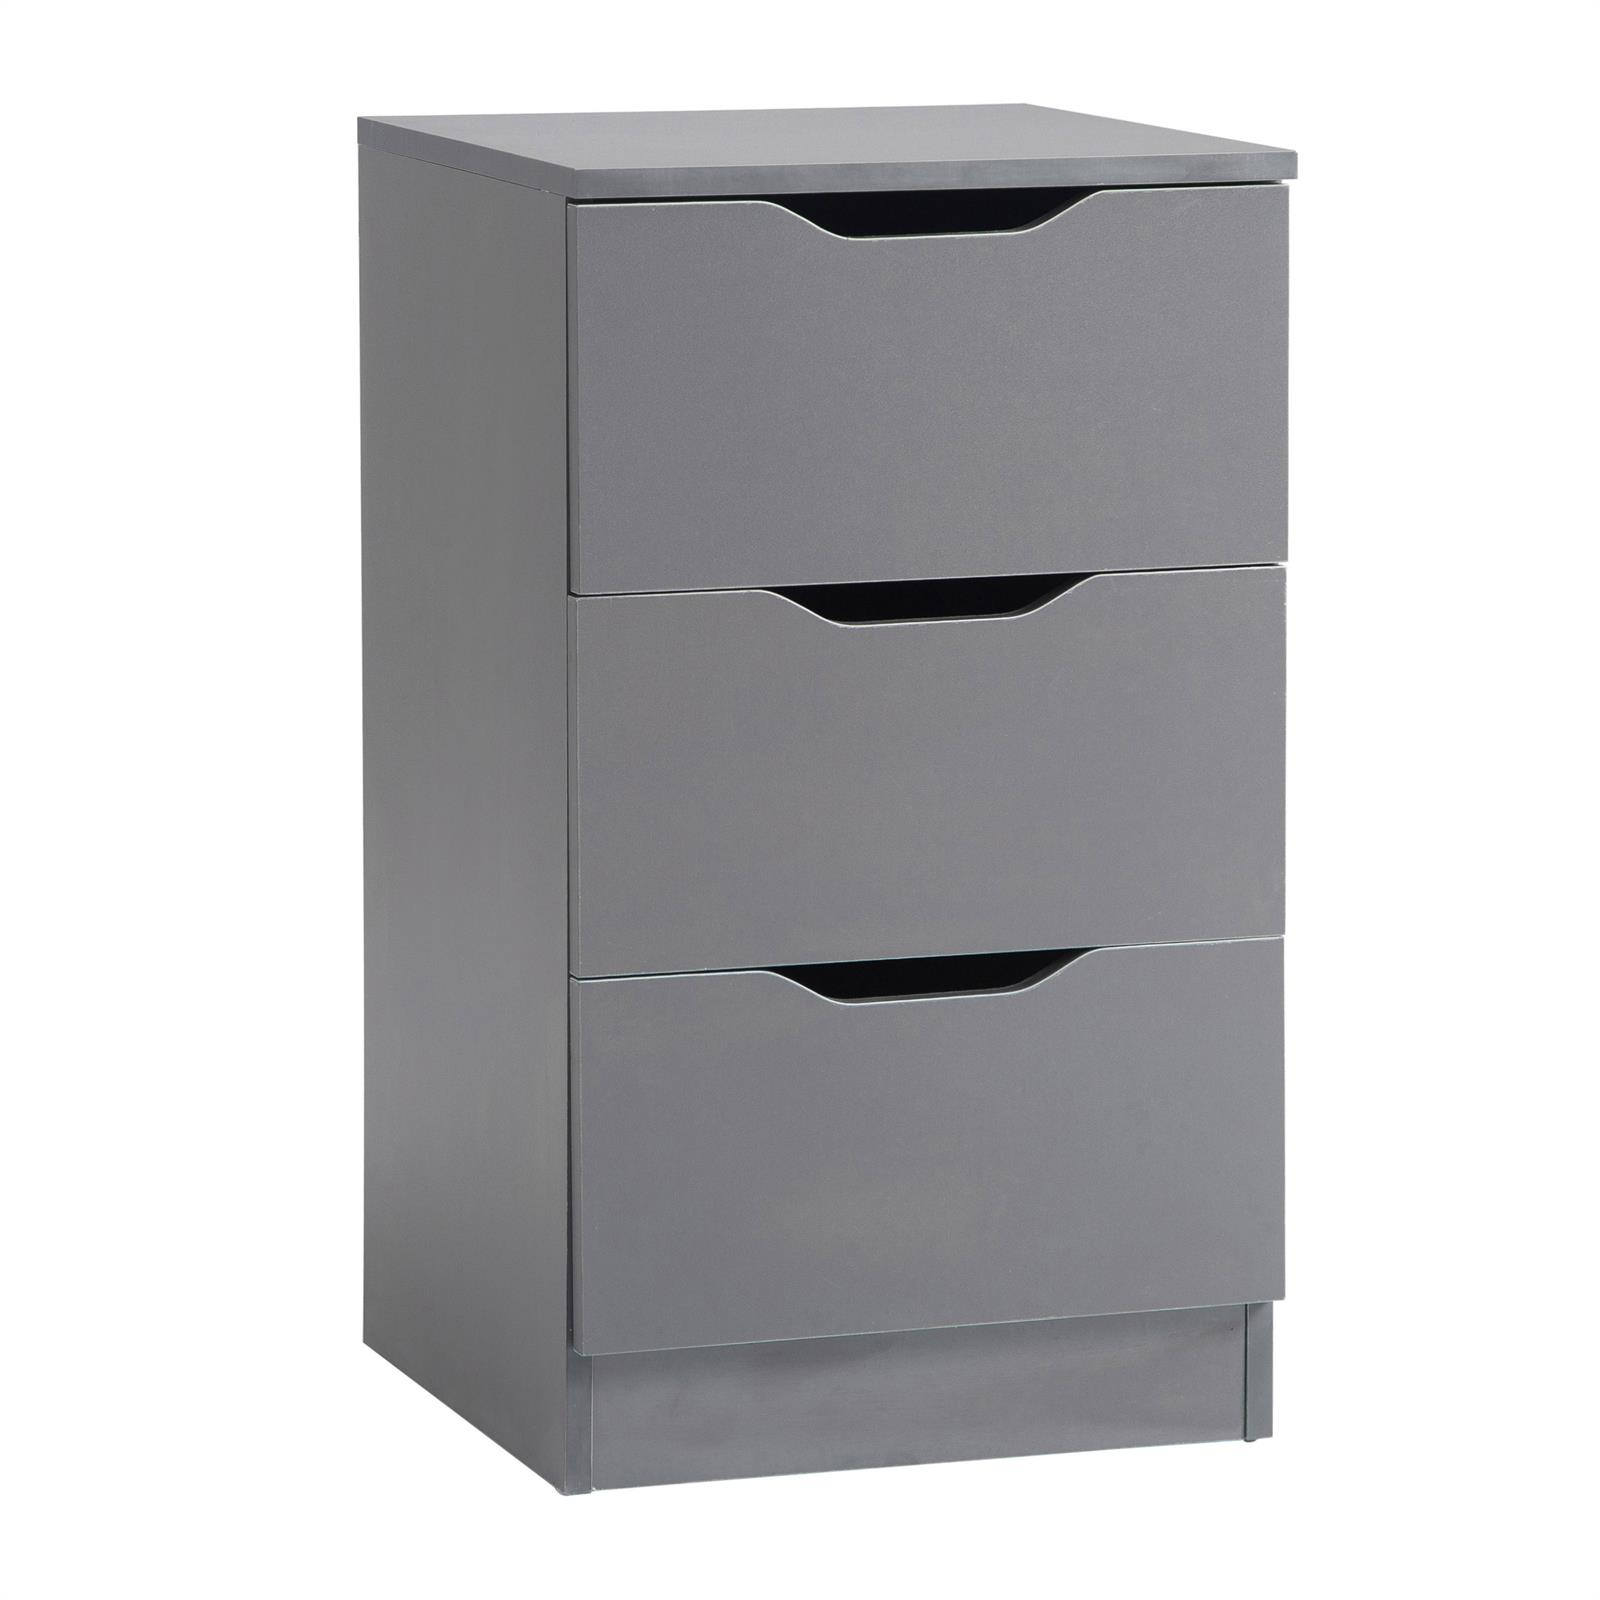 nachttisch nachtkommode nachtschrank f r boxspringbett konsole 3 schubladen ebay. Black Bedroom Furniture Sets. Home Design Ideas